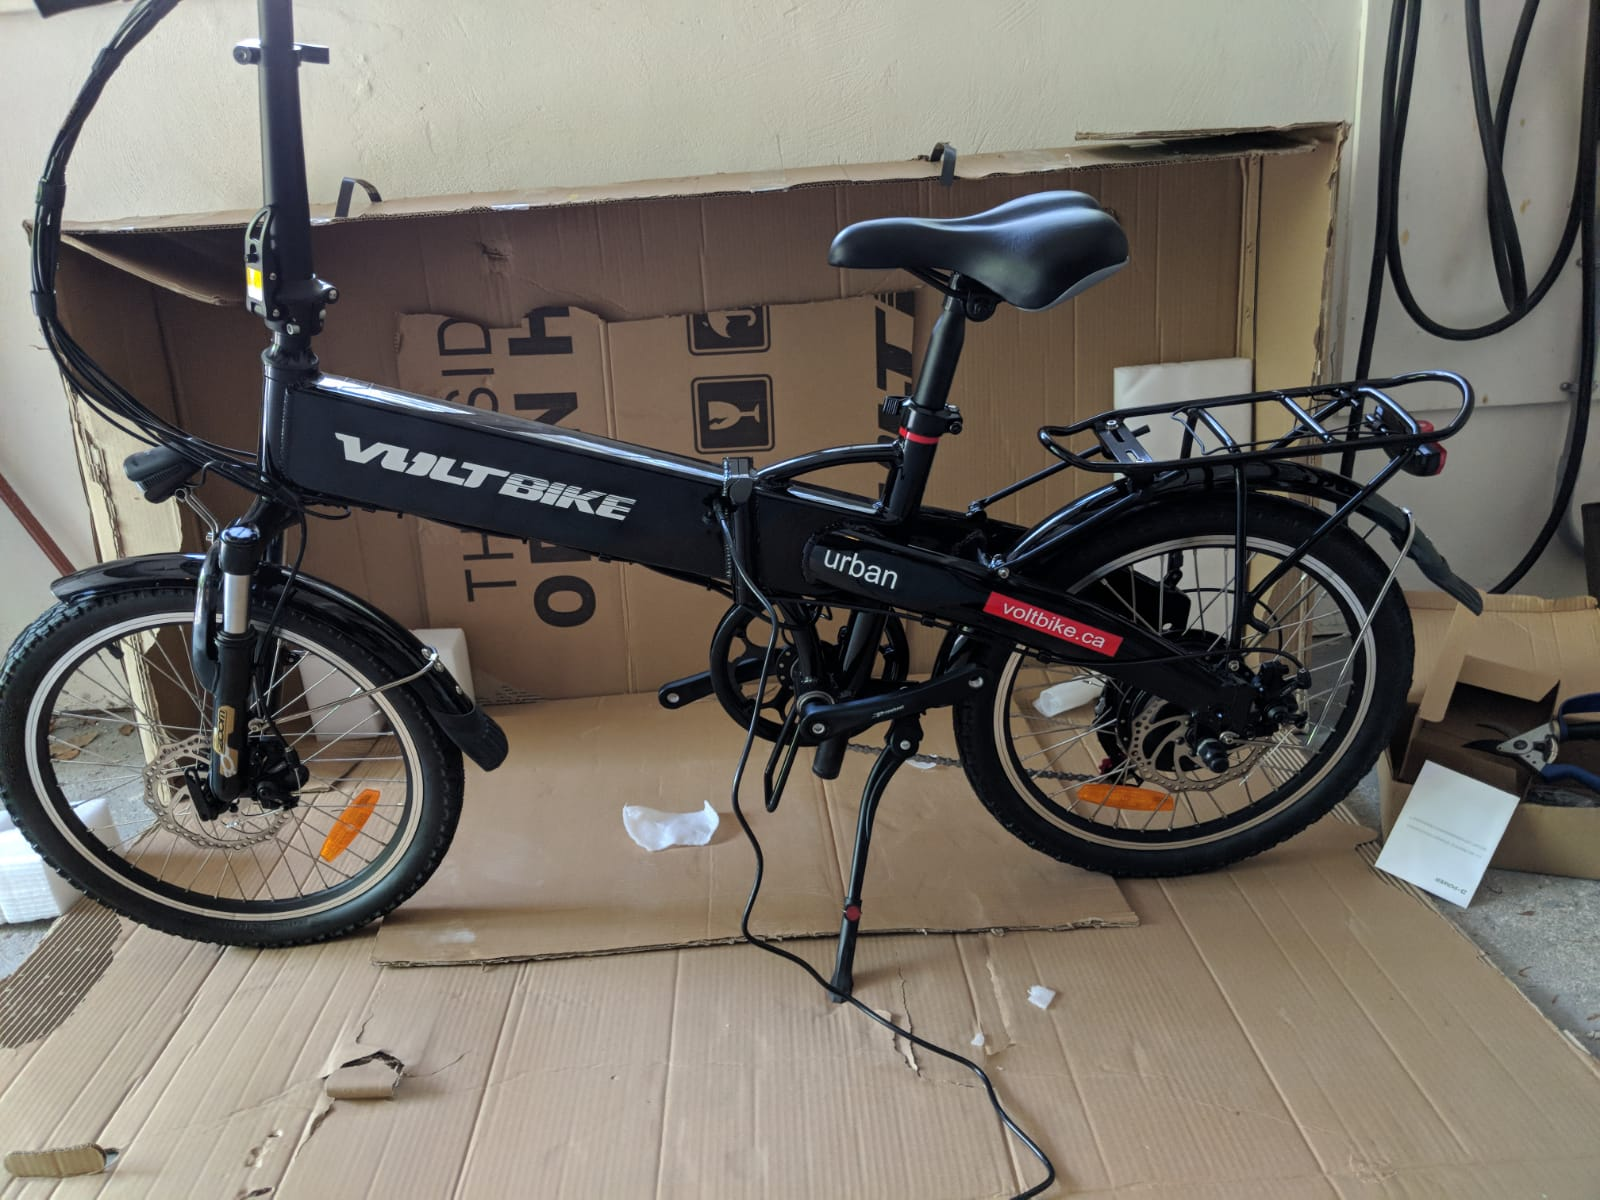 Gadgets w/ wheels and batteries arrive: electric assist bike